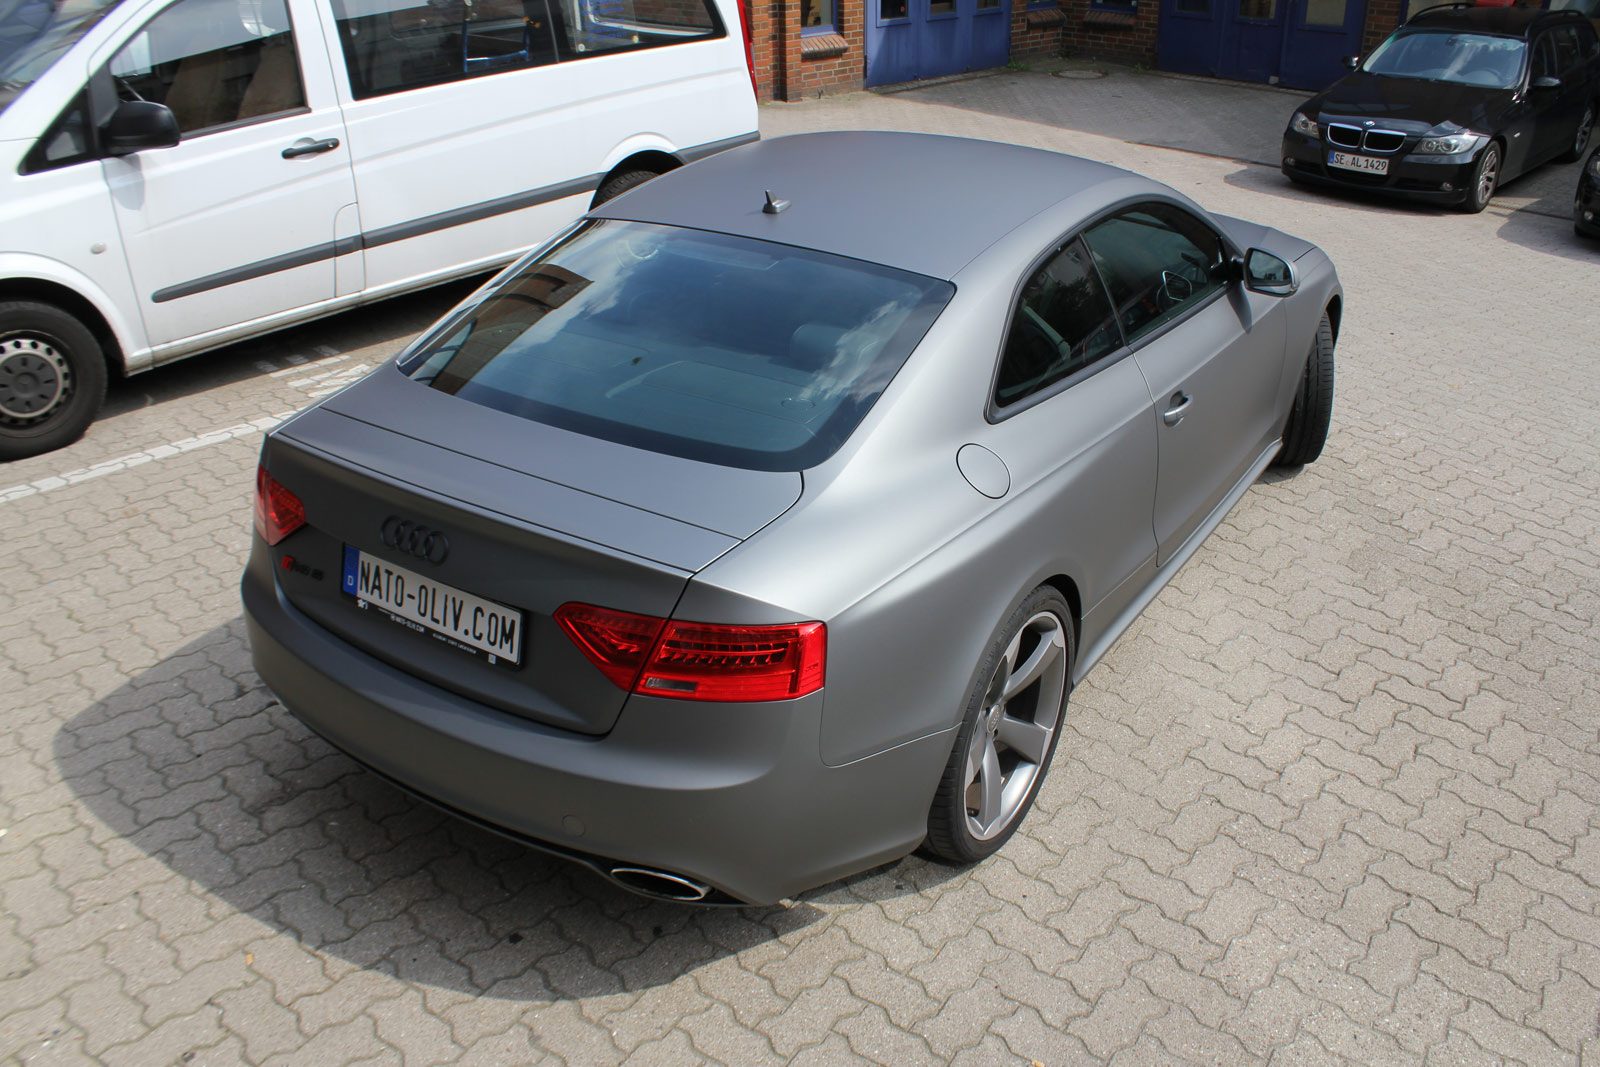 Heckansicht Audi RS5 in Gunmetal metallic matt Folie.